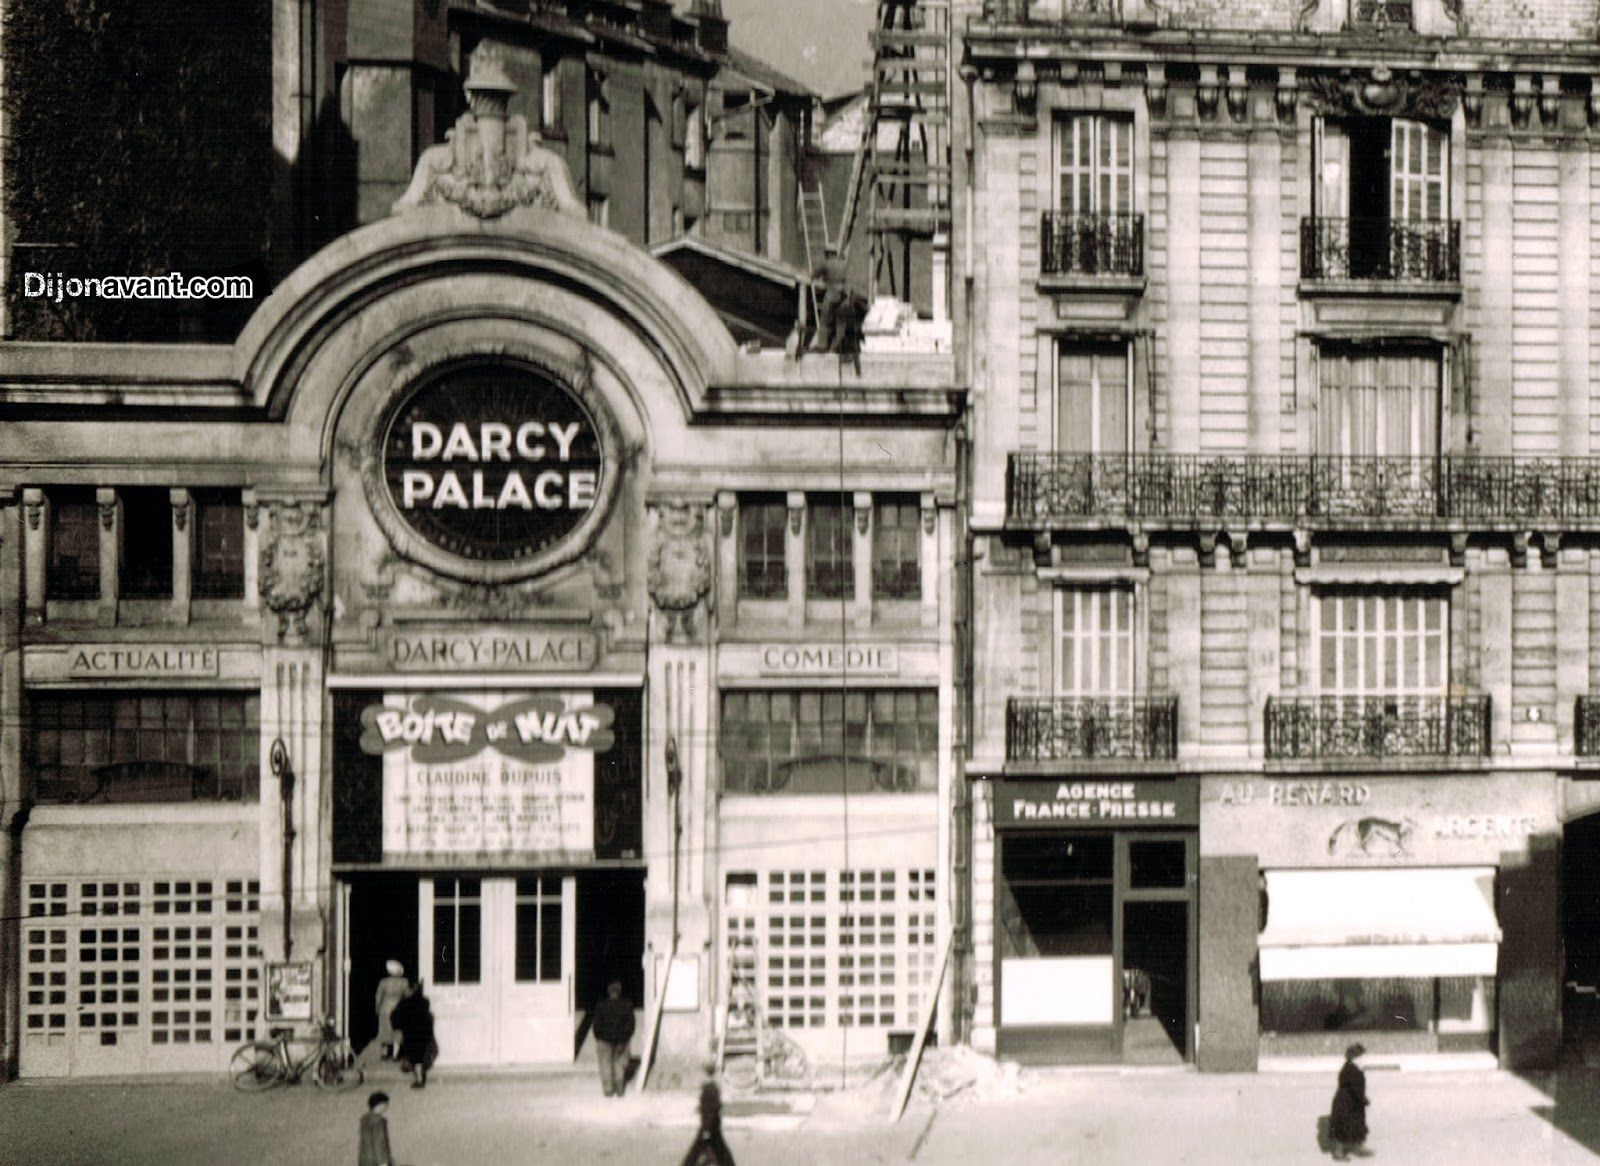 Place Darcy